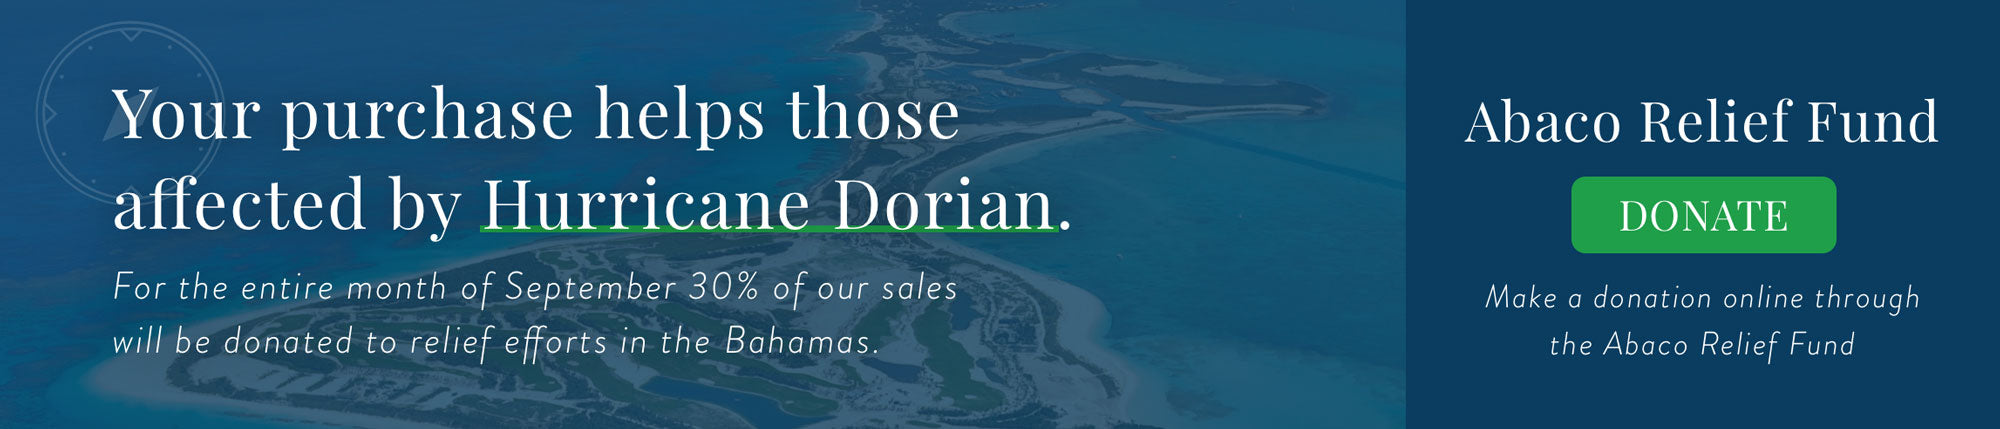 Your purchase helps those affected by Hurricane Dorian. Click to donate to the Abaco Relief Fund.